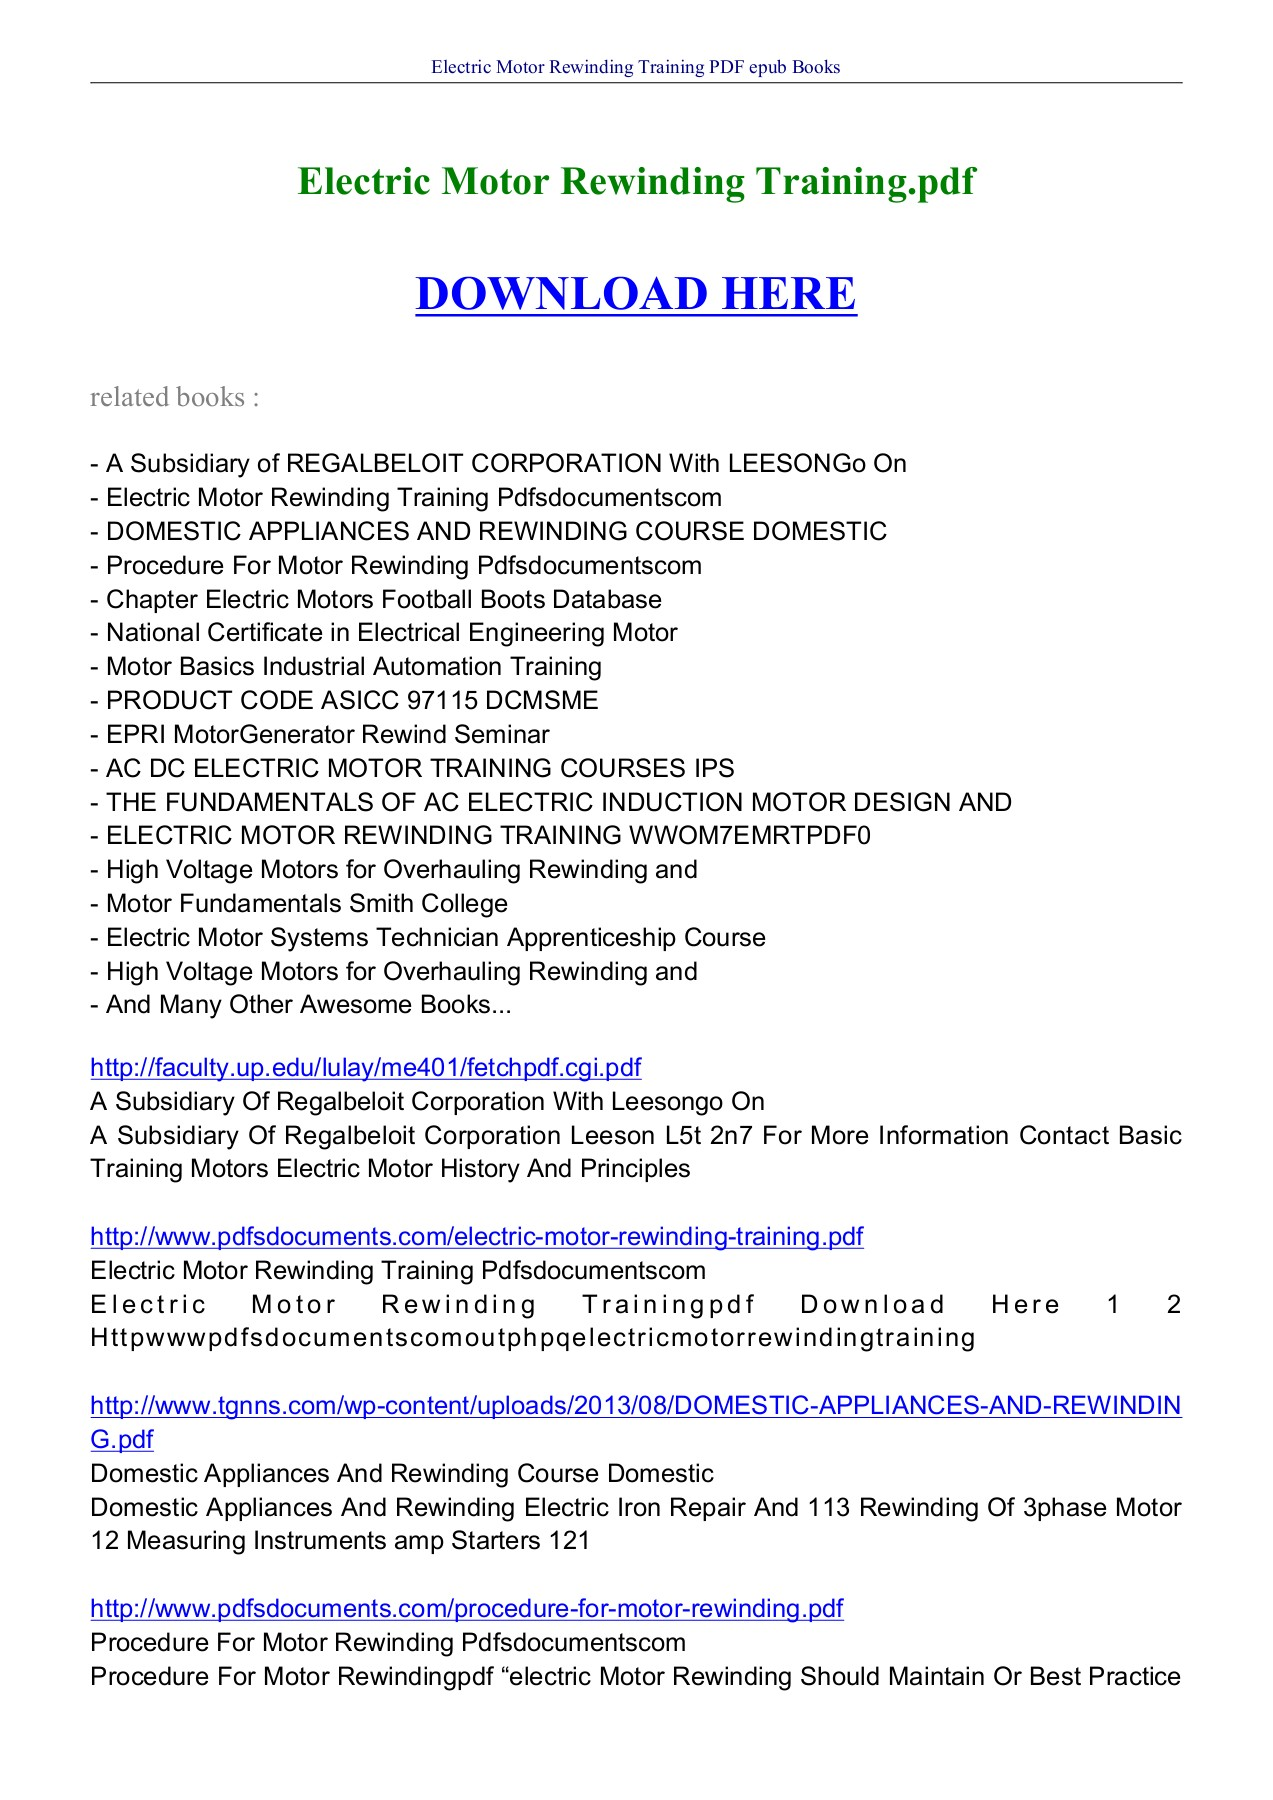 Electric Motor Rewinding Training Pdf Books Ebookread Pages 1 6 Text Version Anyflip